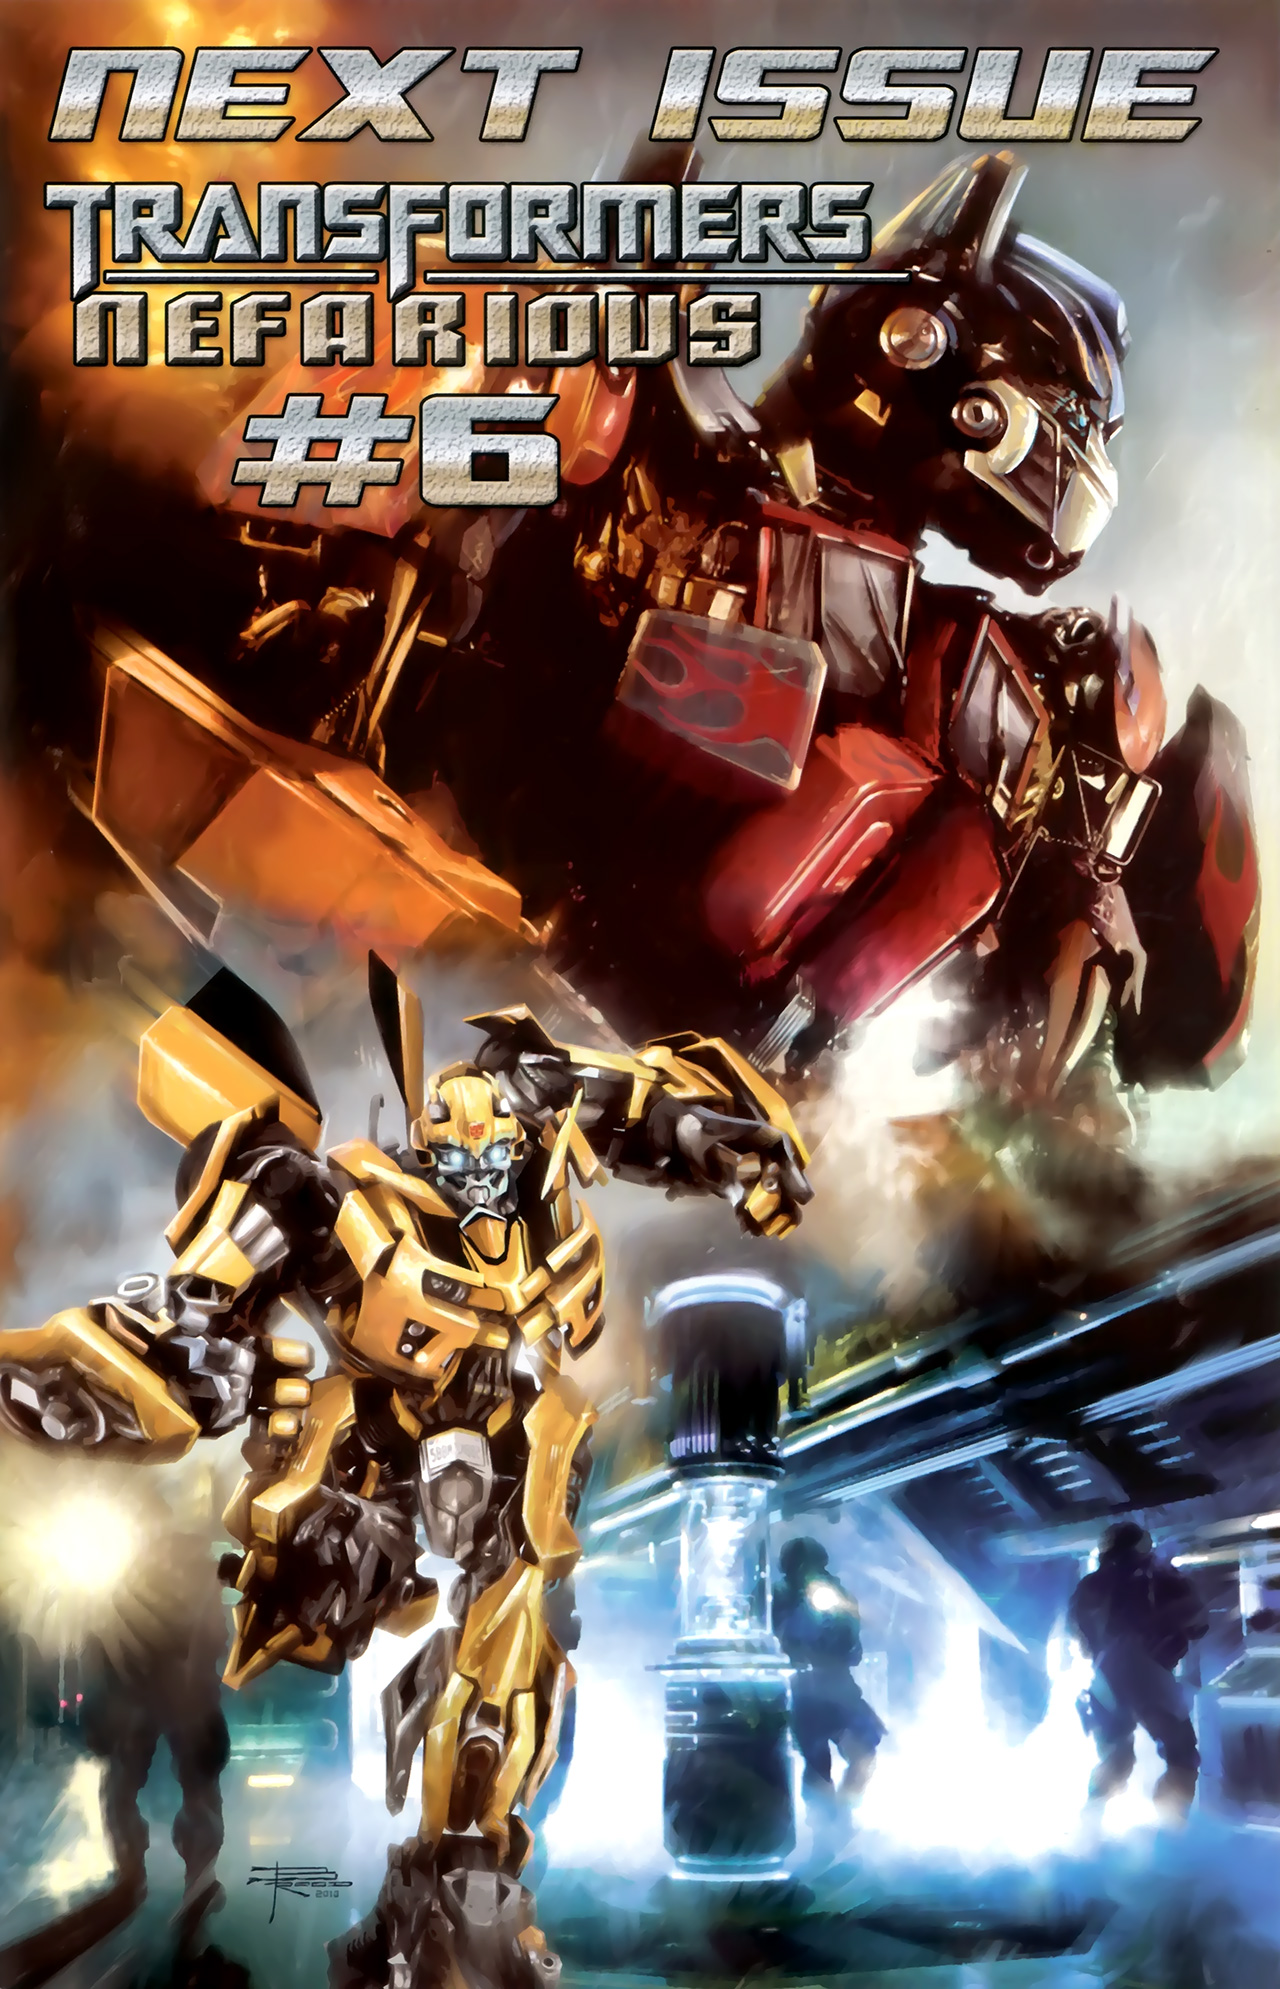 Read online Transformers: Nefarious comic -  Issue #5 - 26